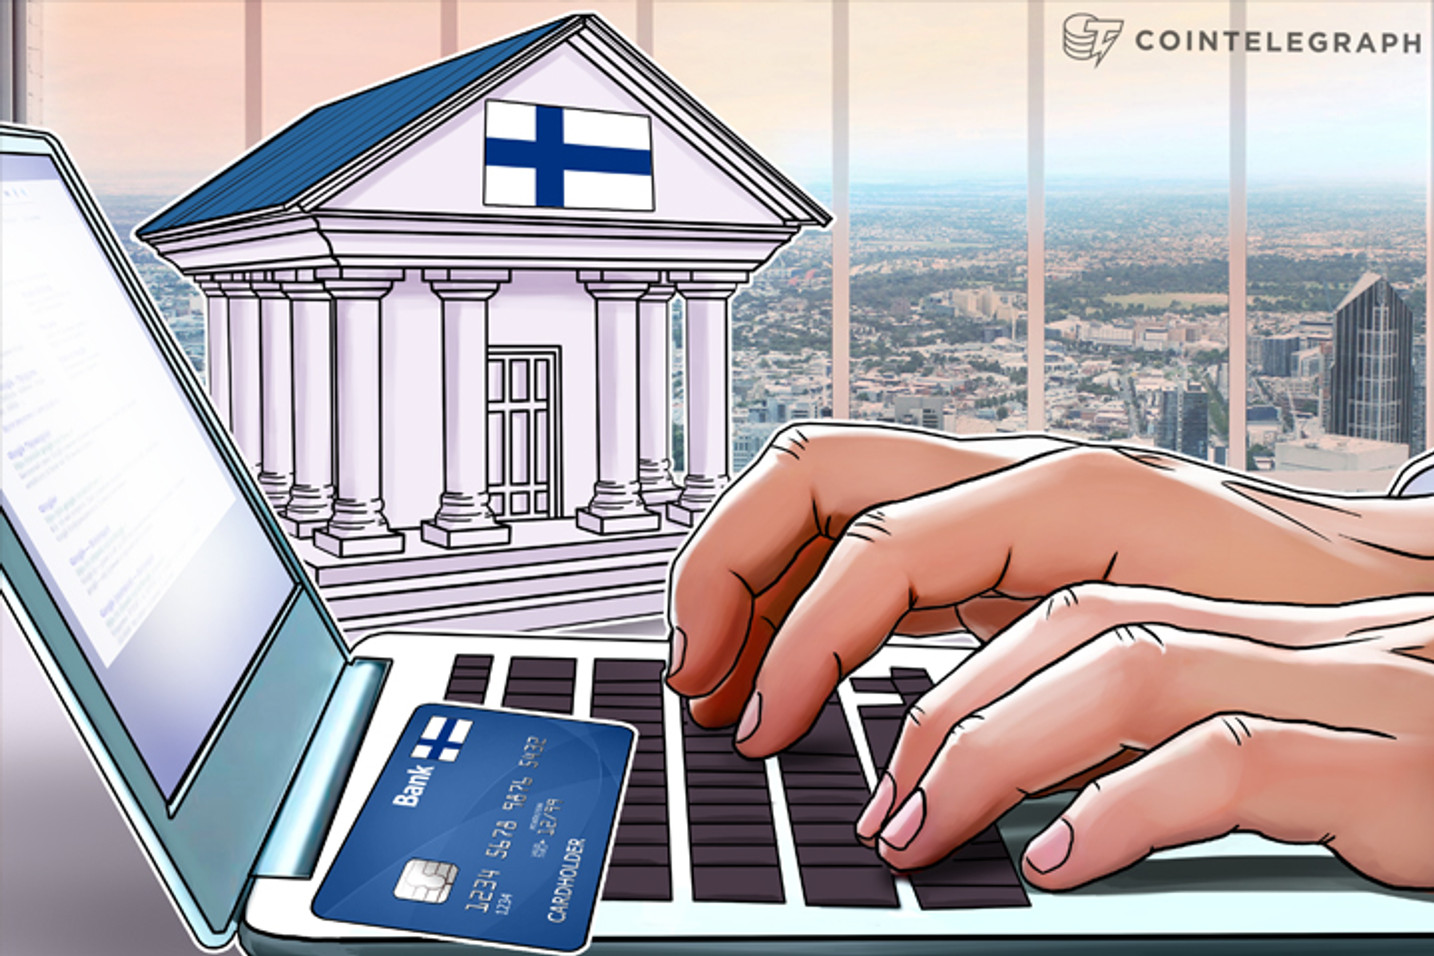 Finland's New Law: Bank Account Freedom Means More Data Collection